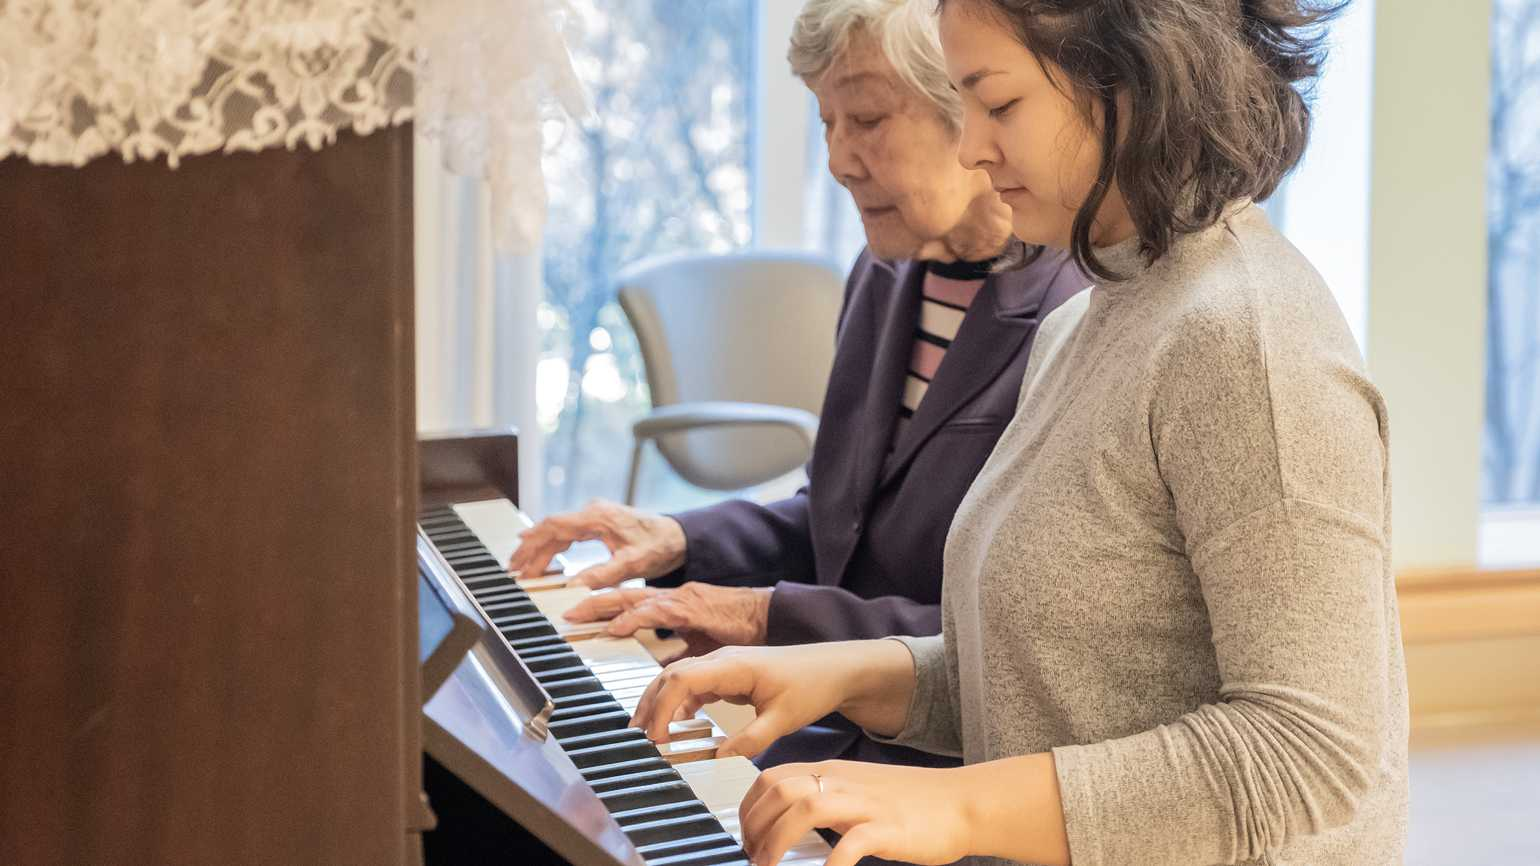 A caregiver plays piano with her client.